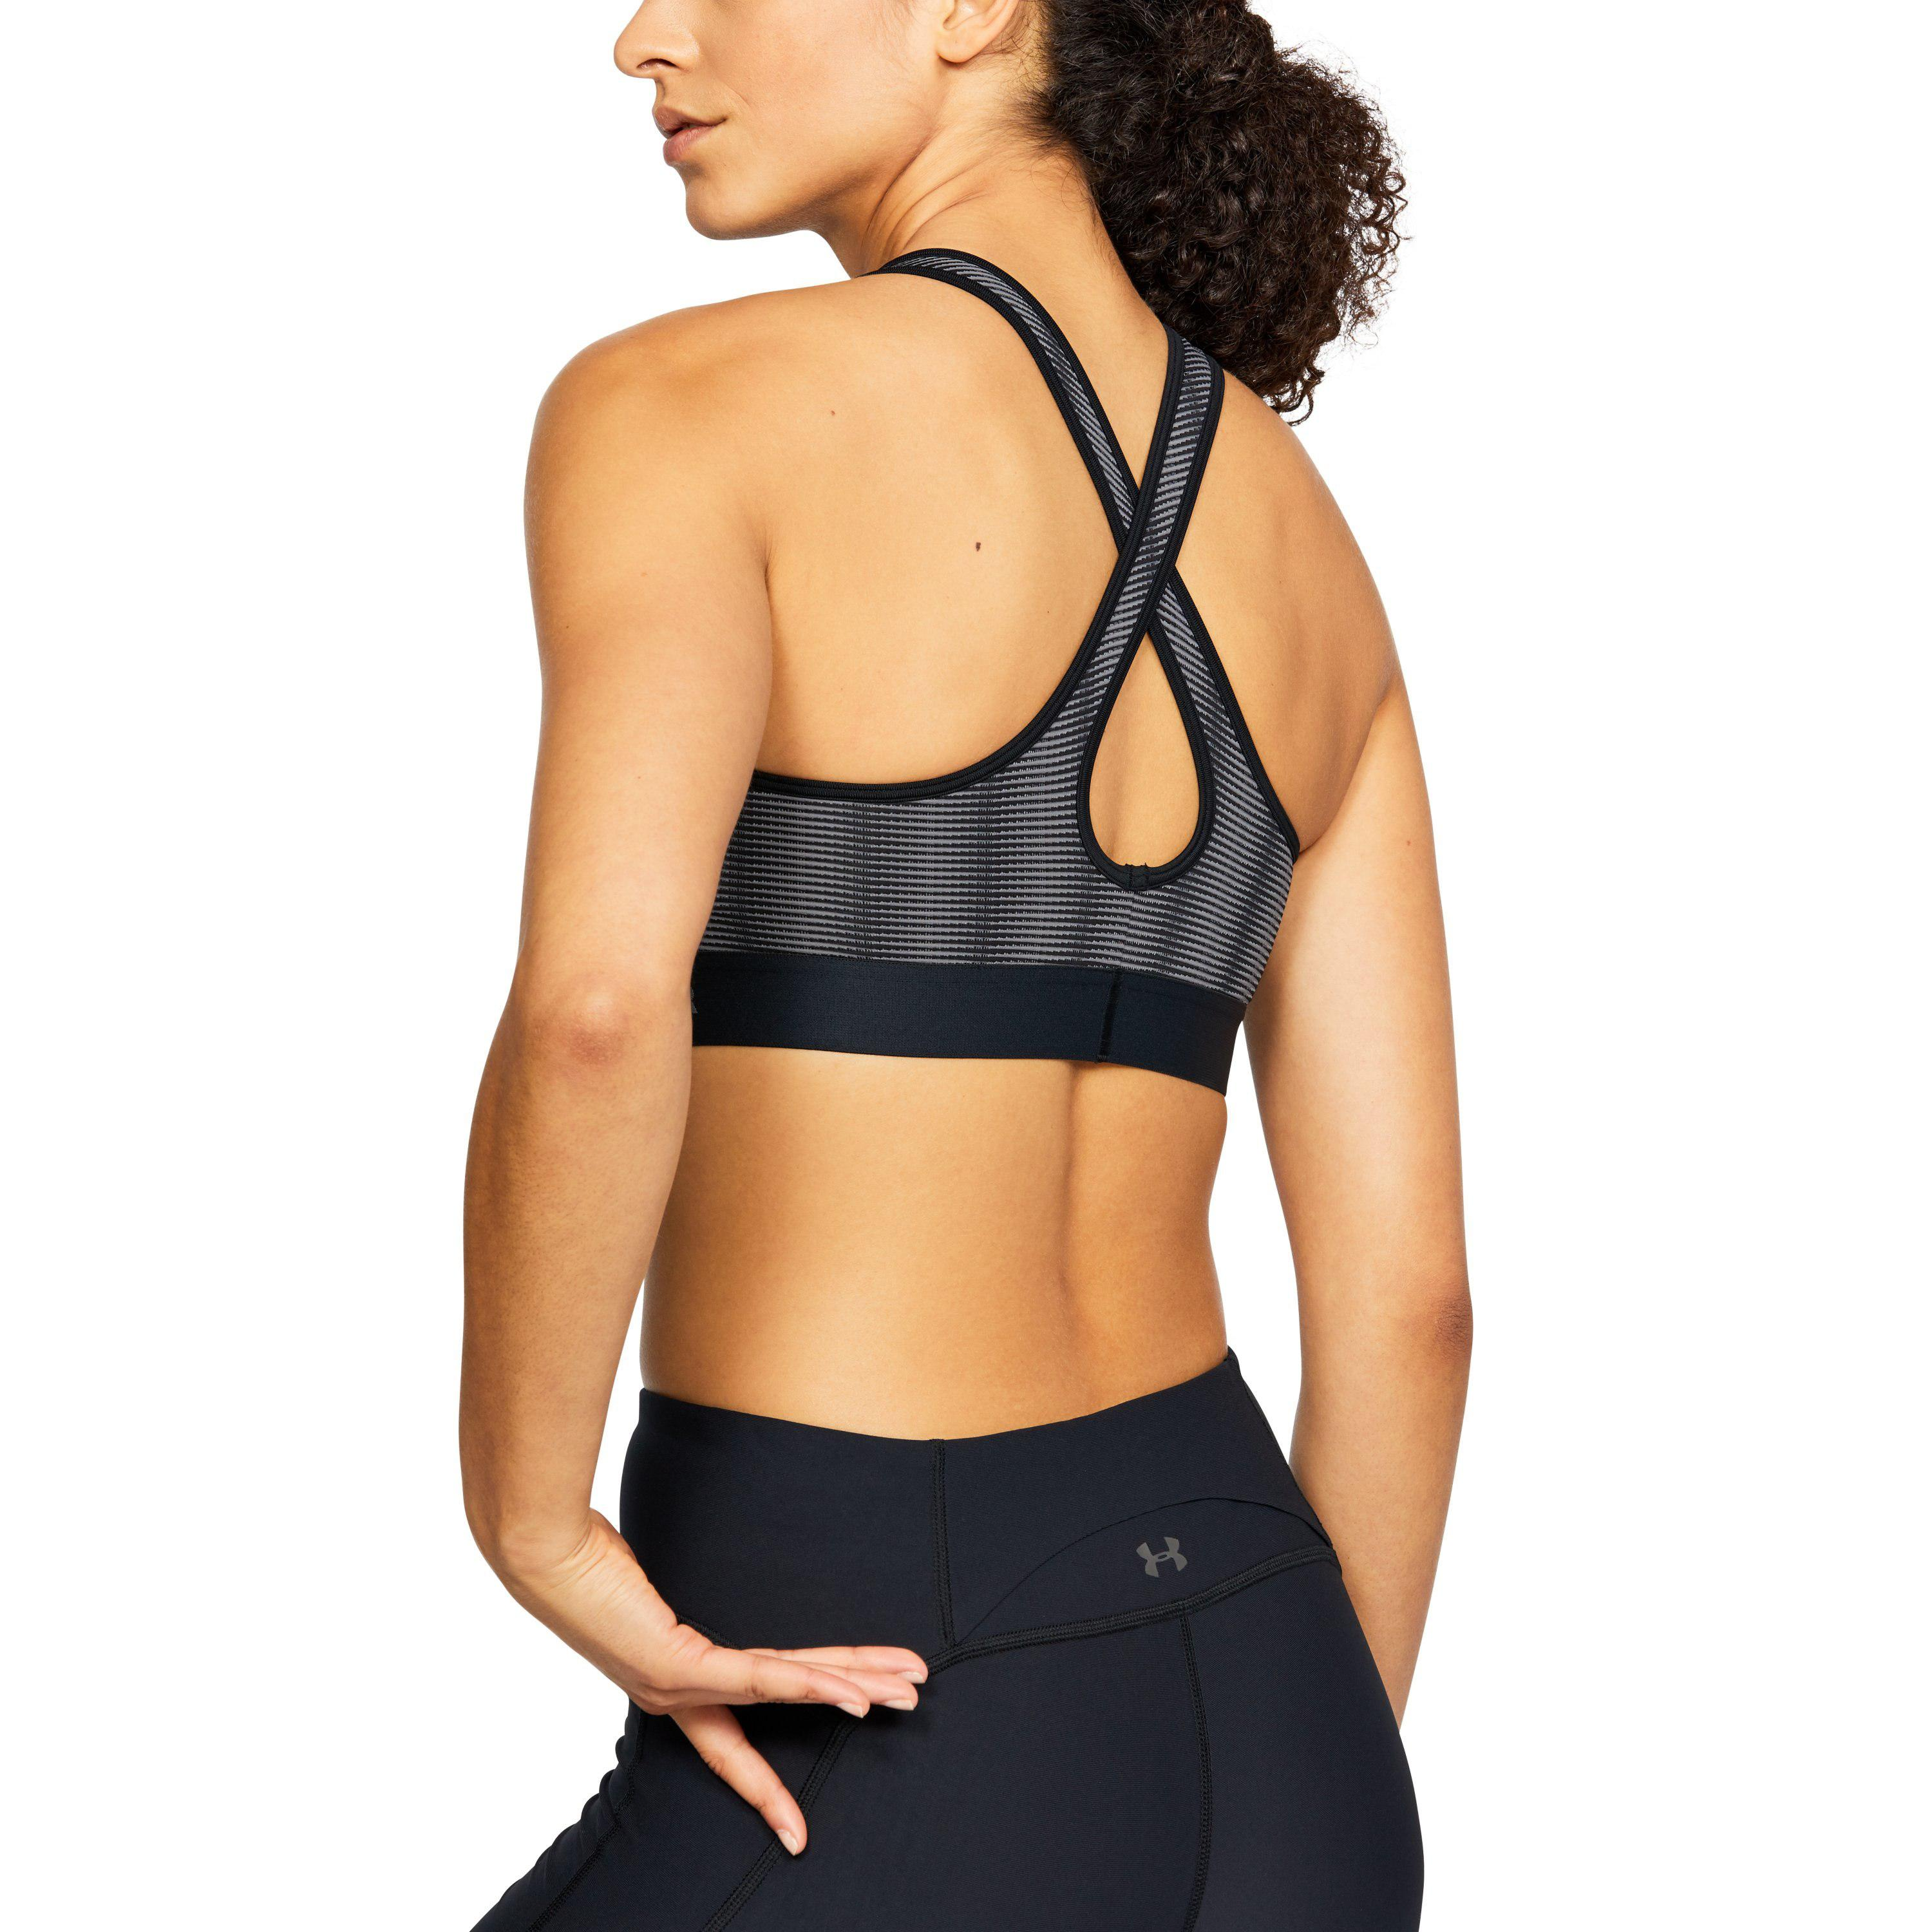 734ab5b969 Lyst - Under Armour Women s Armour® Mid Crossback Patterned Sports ...